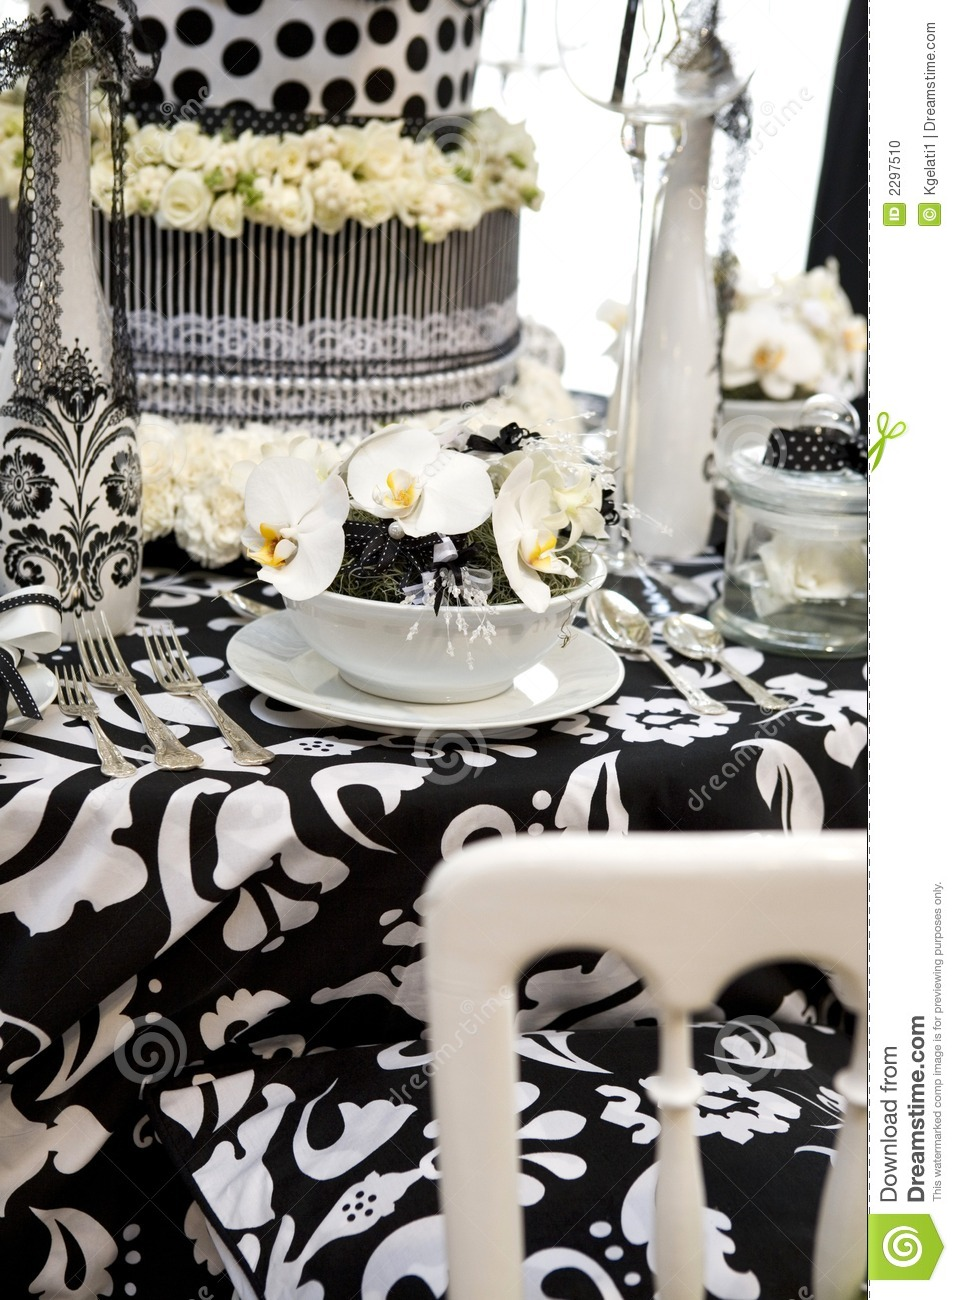 Table Setting Black And White Stock Photo Image 2297510